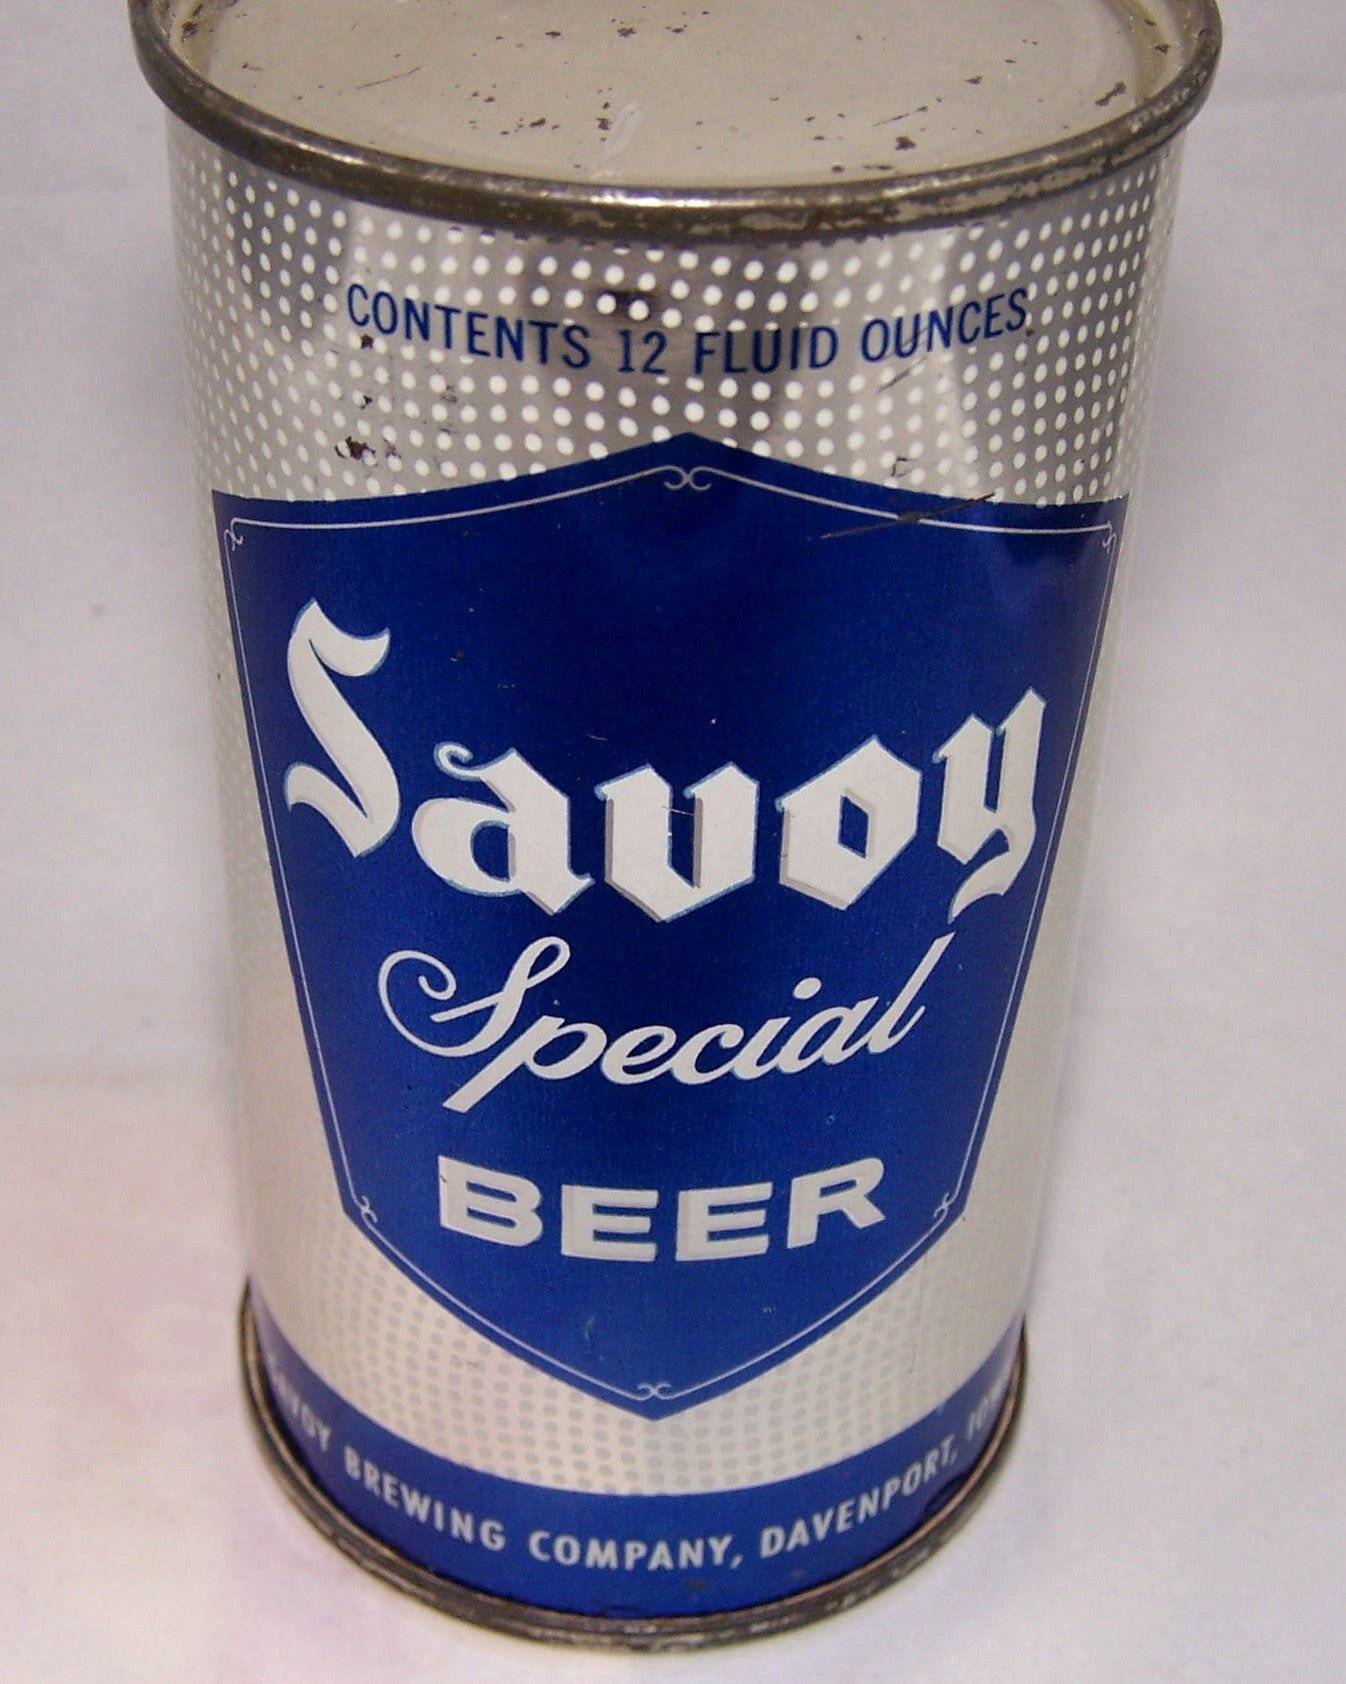 Savoy Special Beer (Iowa) USBC 127-18, Grade 1/1+ Sold on 05/17/16